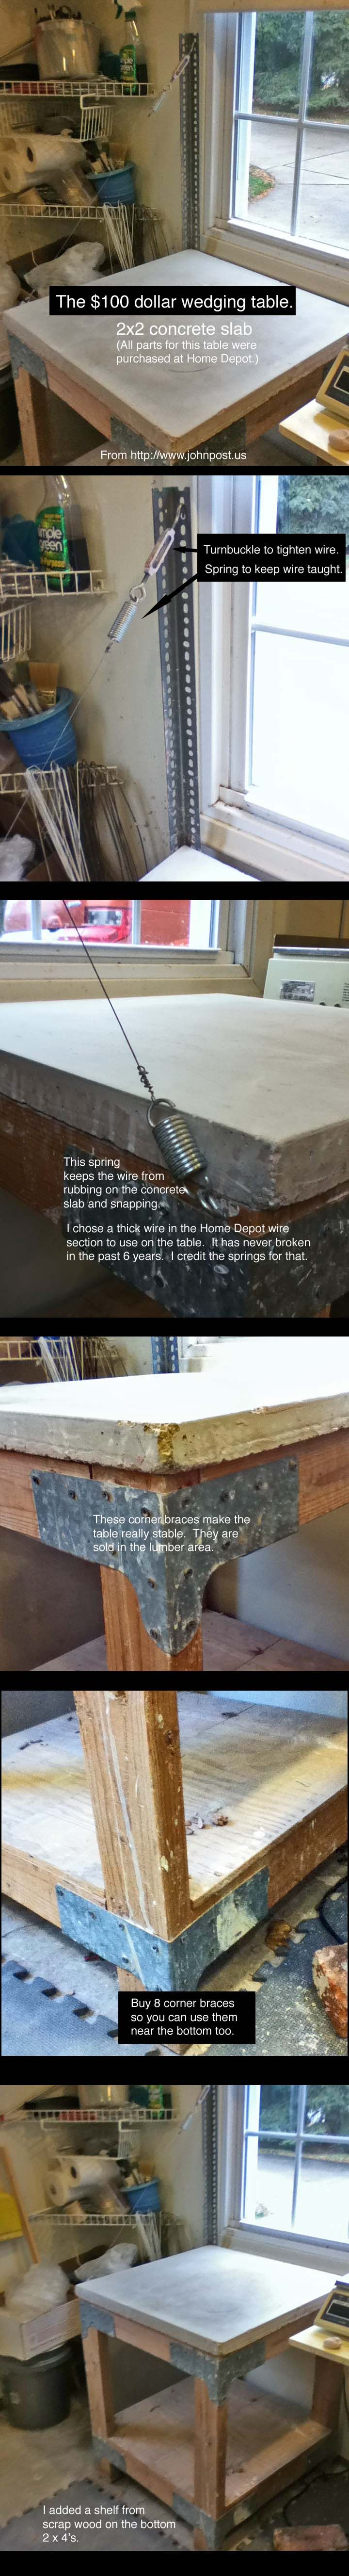 """This wedging table can be constructed for less than $100 in parts from Home Depot. If you are building one, make sure you start in the garden department. You'll need a """"smooth"""" 2x2 concrete paving stone/slab."""